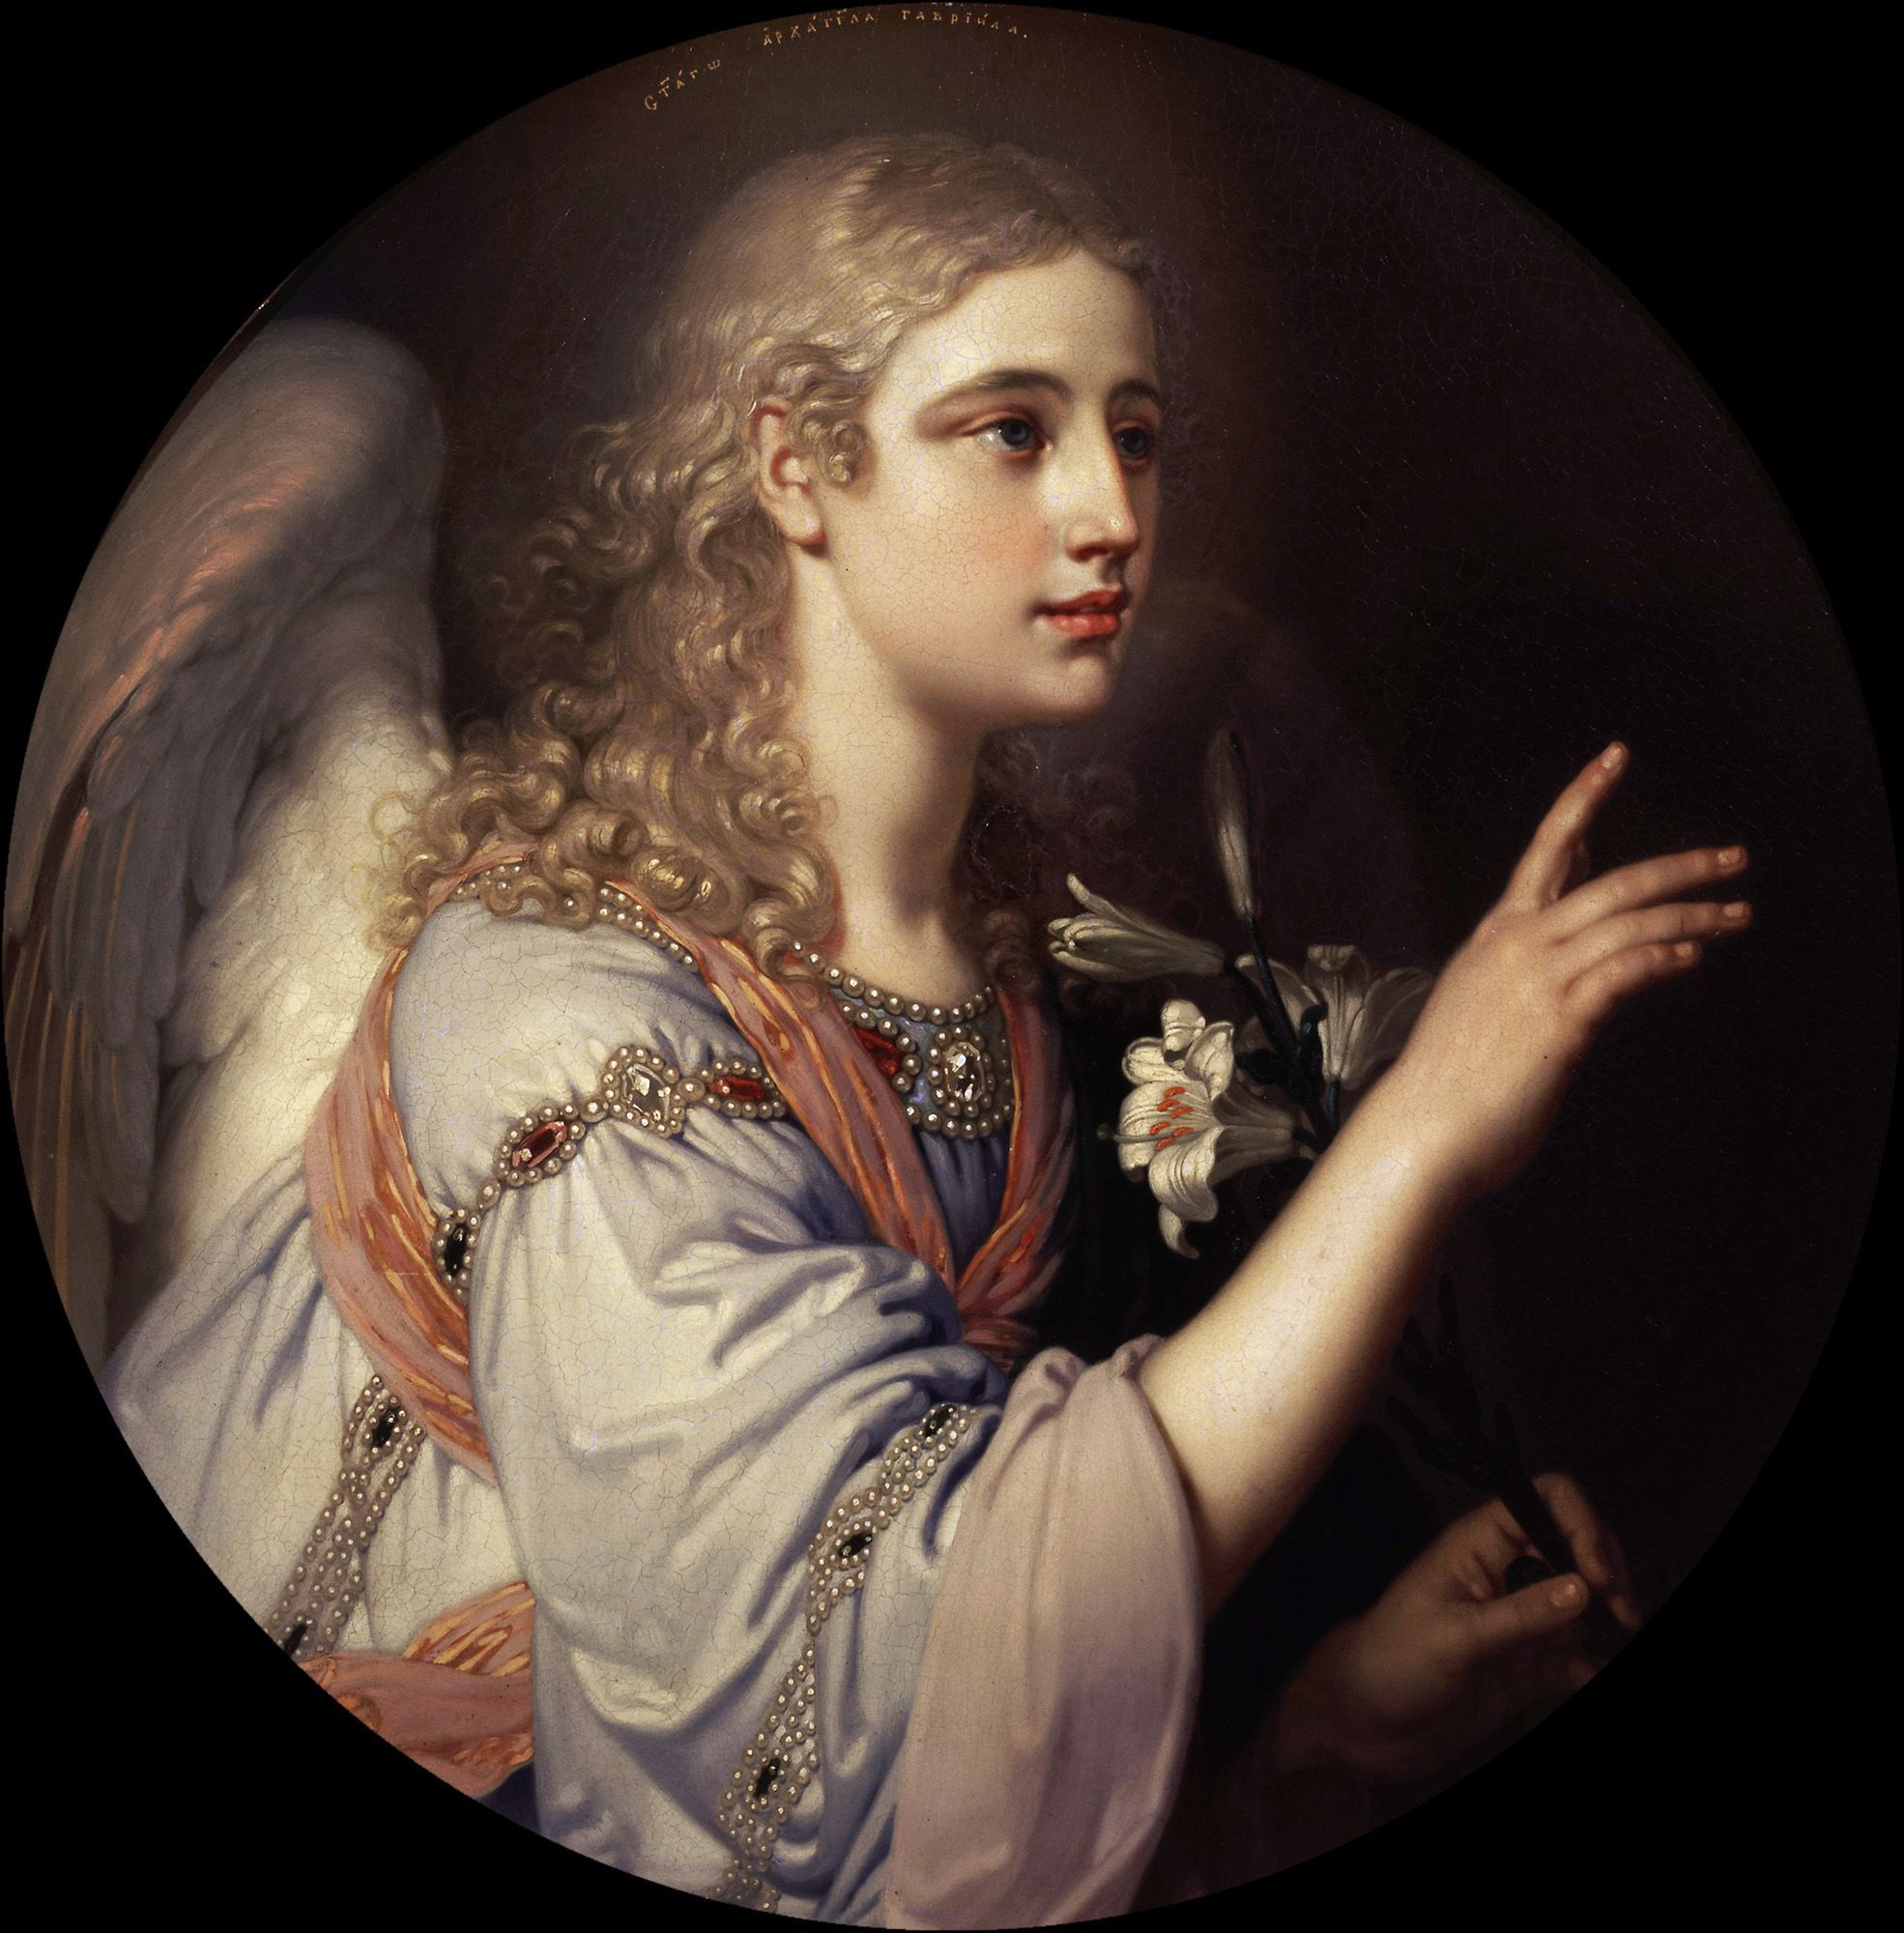 Archangel_Gabriel_from_the_Annunciation